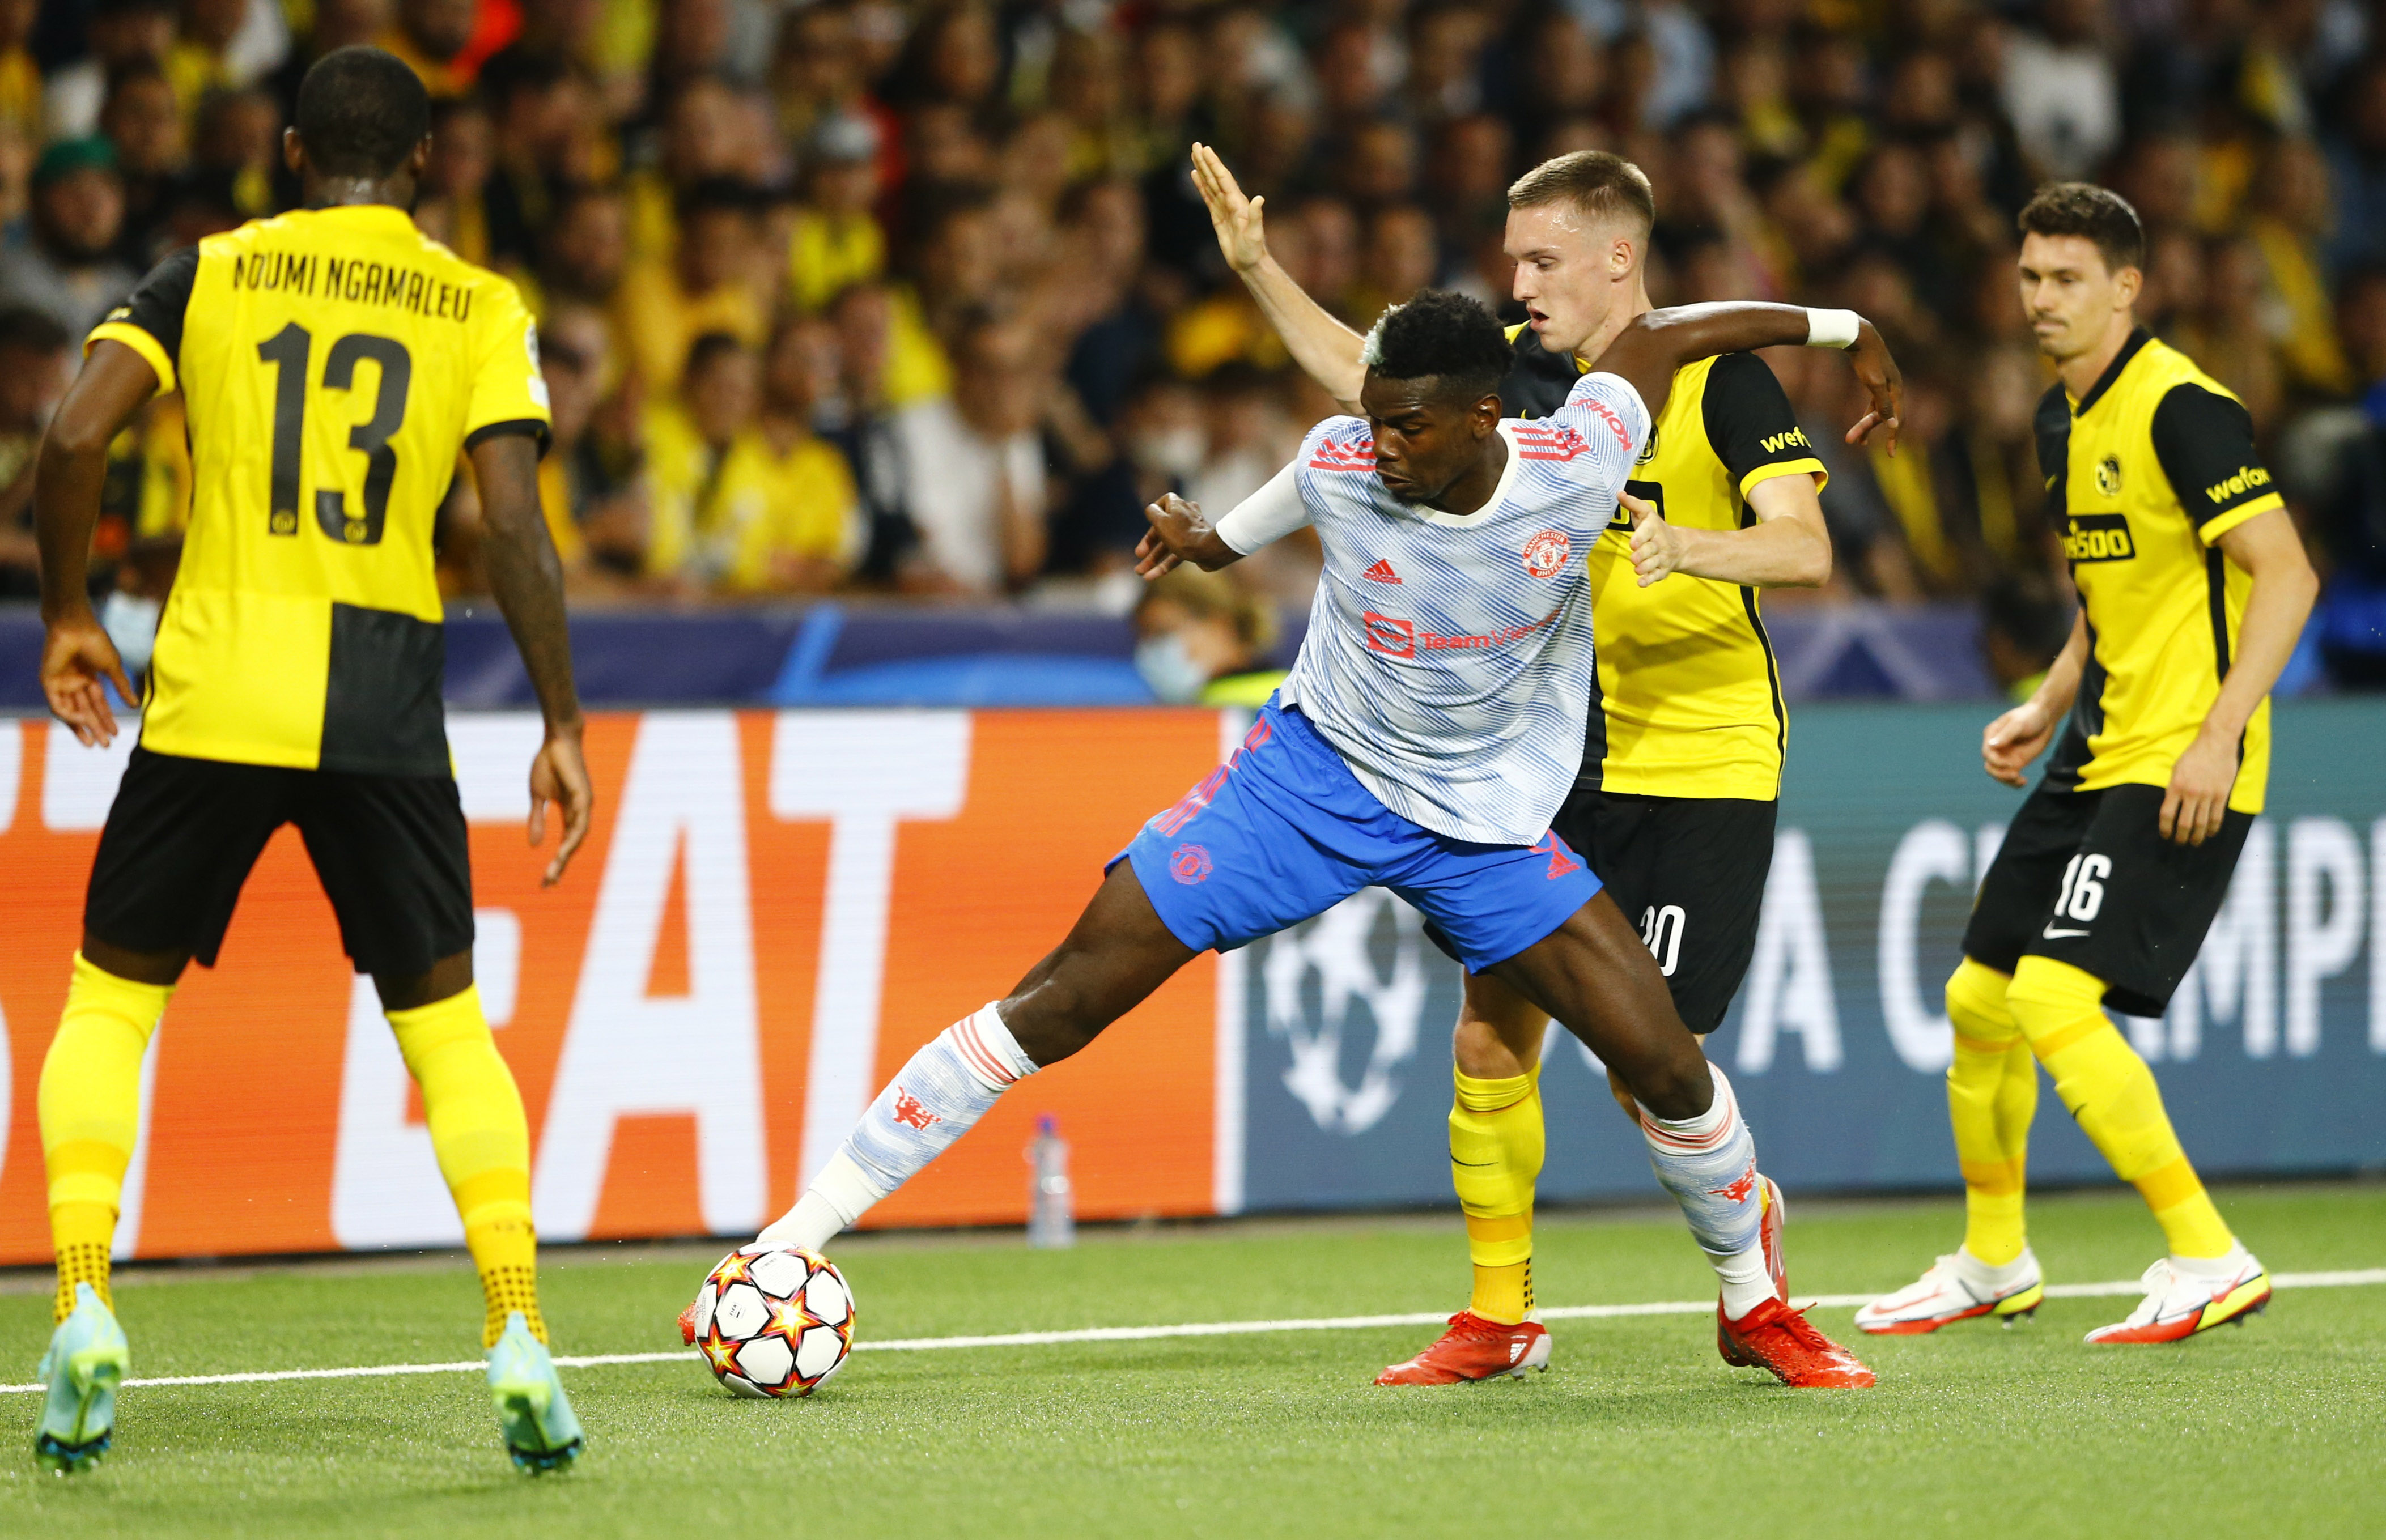 Soccer Football - Champions League - Group F - BSC Young Boys v Manchester United - Stadion Wankdorf, Bern, Switzerland- September 14, 2021 Manchester United's Paul Pogba in action with BSC Young Boys' Miralem Sulejmani REUTERS/Arnd Wiegmann